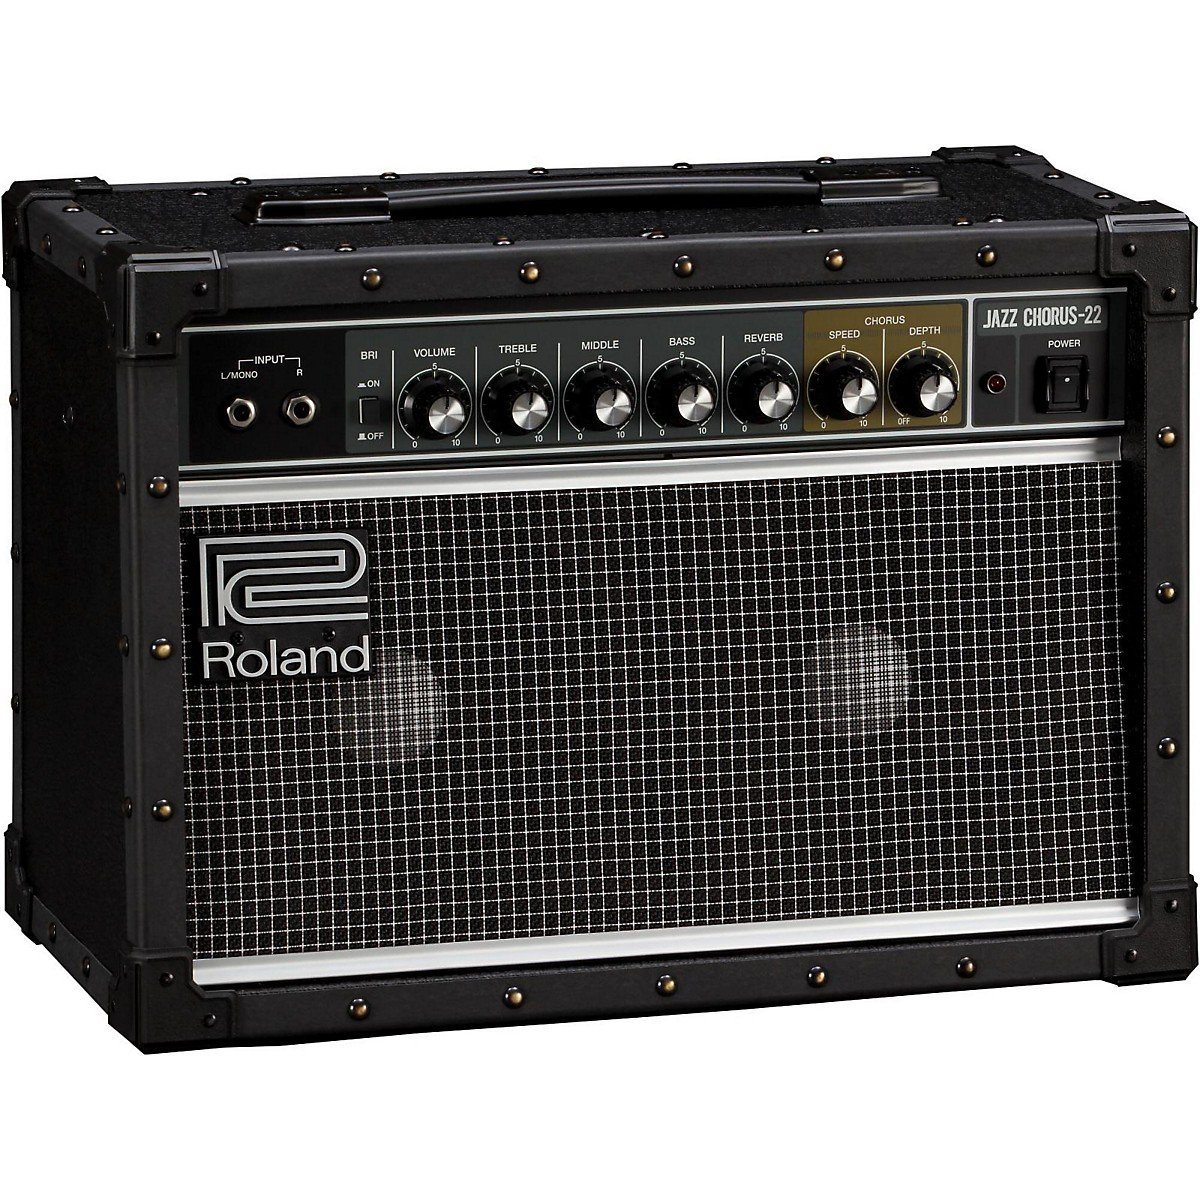 Roland Jc 22 Jazz Chorus 30w 2x65 Guitar Combo Watt Audio Amplifier Black Musical Instruments